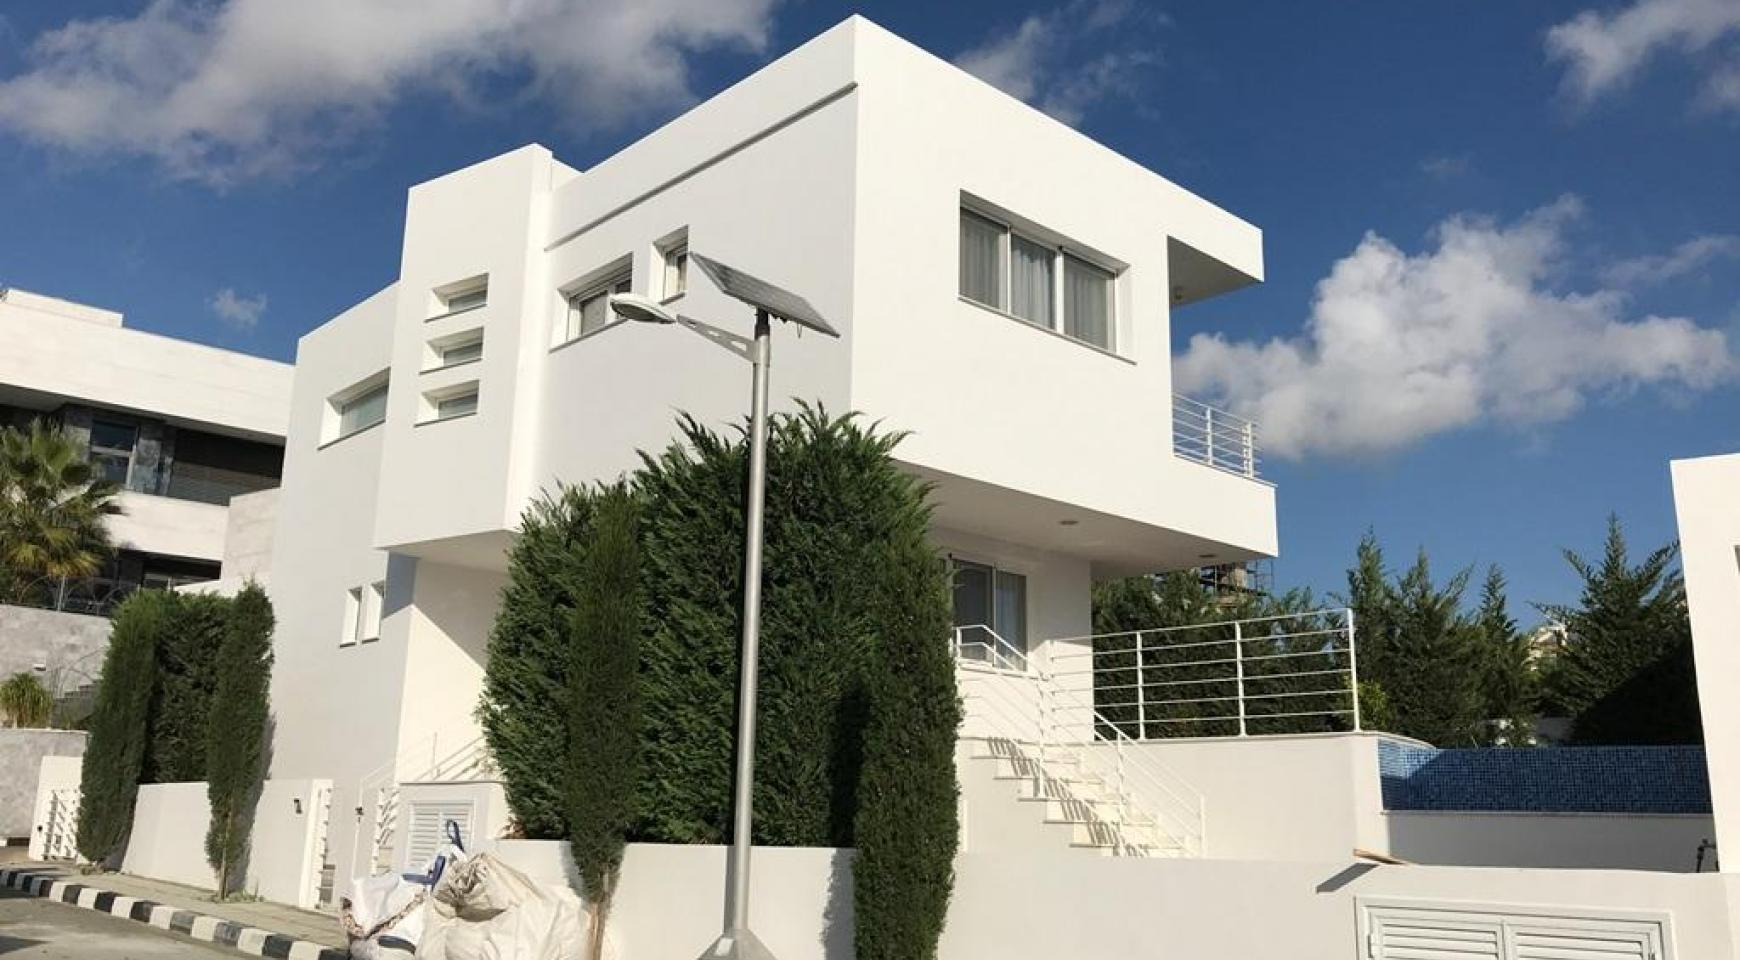 4 Bedroom Villa with Sea Views in Agios Tychonas - 2